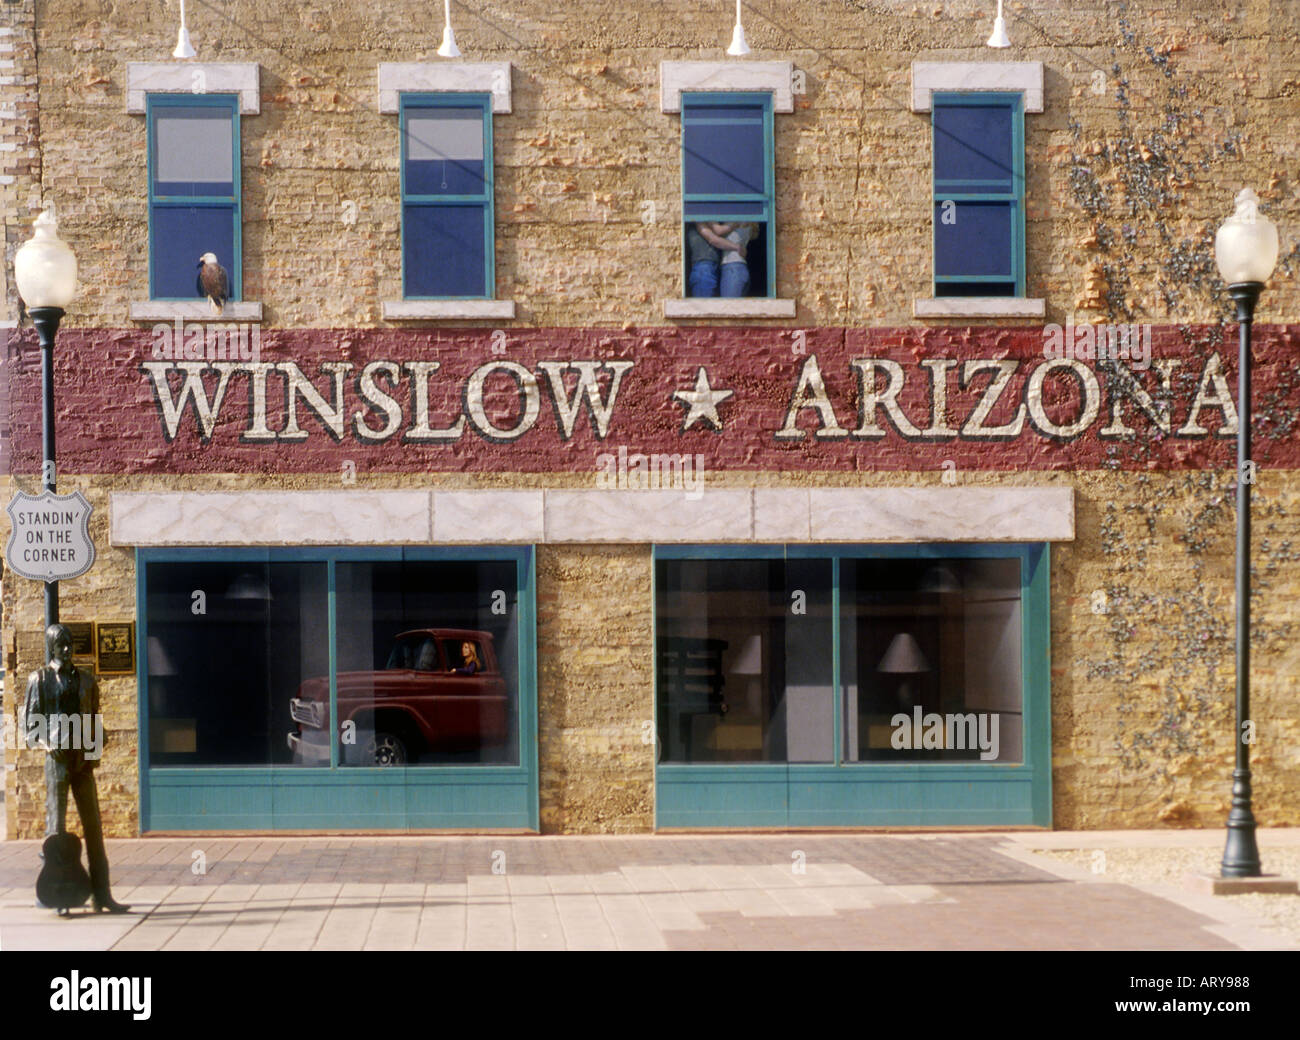 standing on the corner in winslow arizona stock photos standing on the corner in winslow. Black Bedroom Furniture Sets. Home Design Ideas